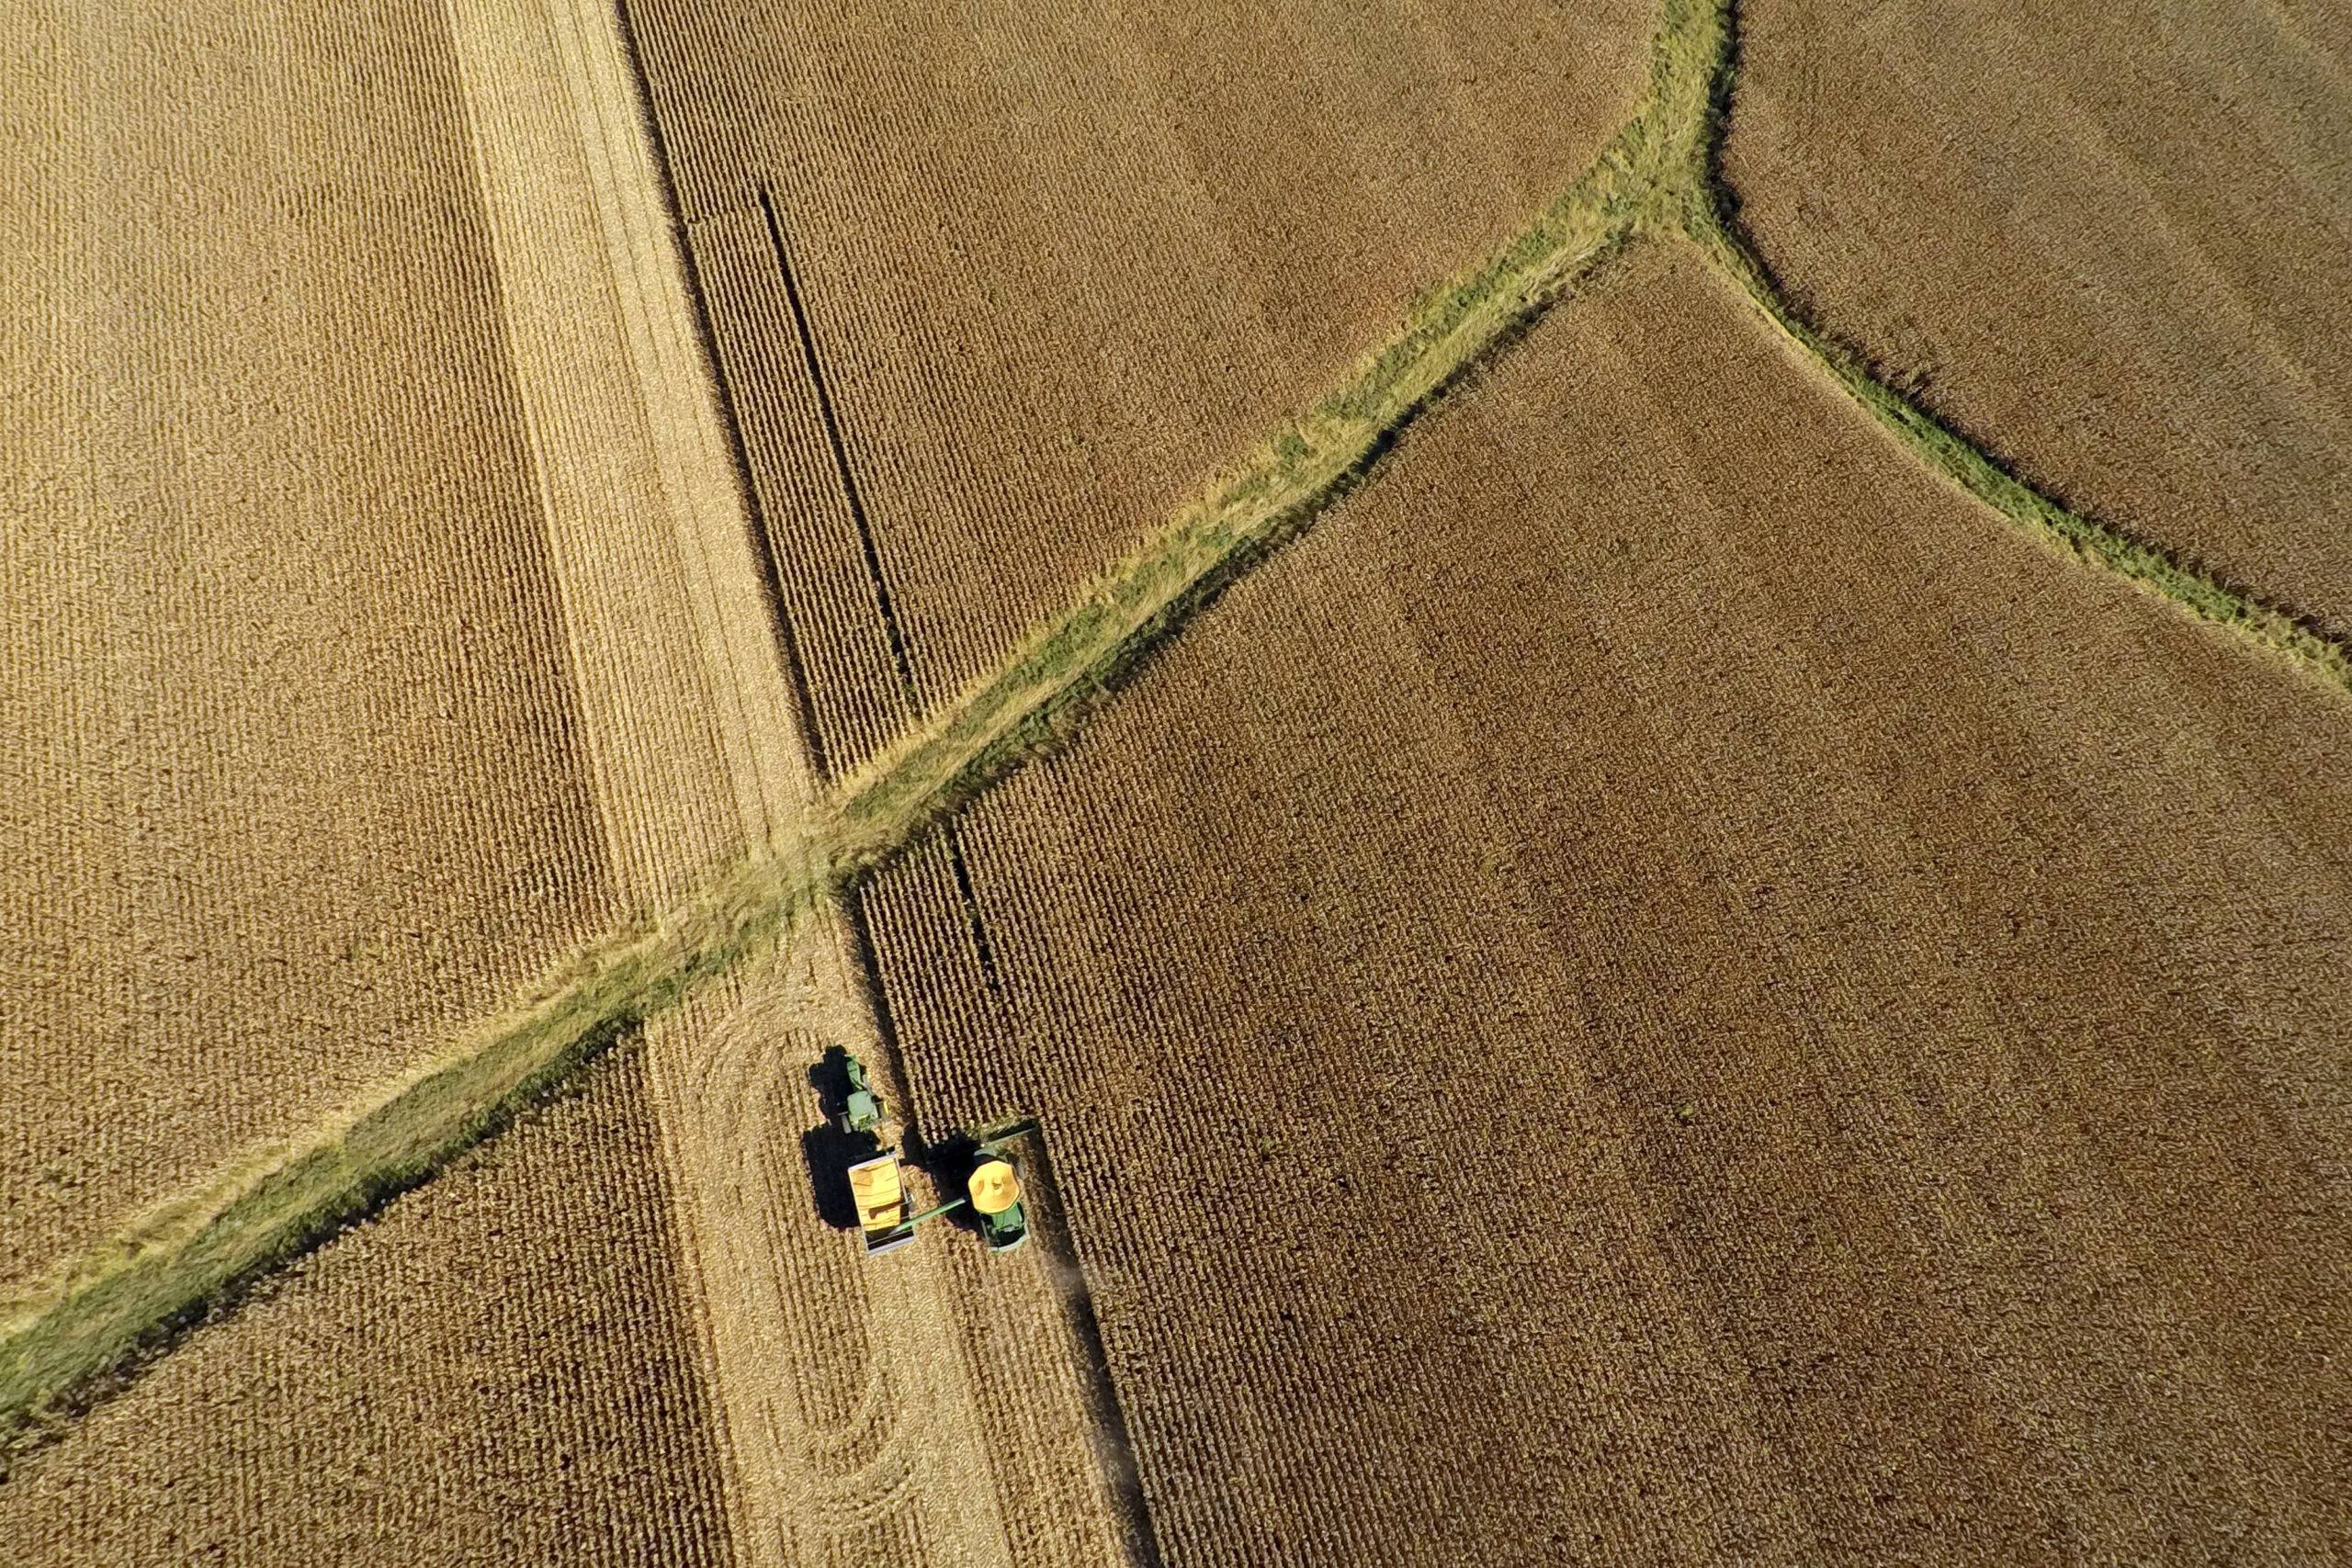 Corn is harvested in this aerial photograph taken above Malden, Illinois, on Wednesday, Sept. 30, 2015. Credit: Daniel Acker/Bloomberg via Getty Images